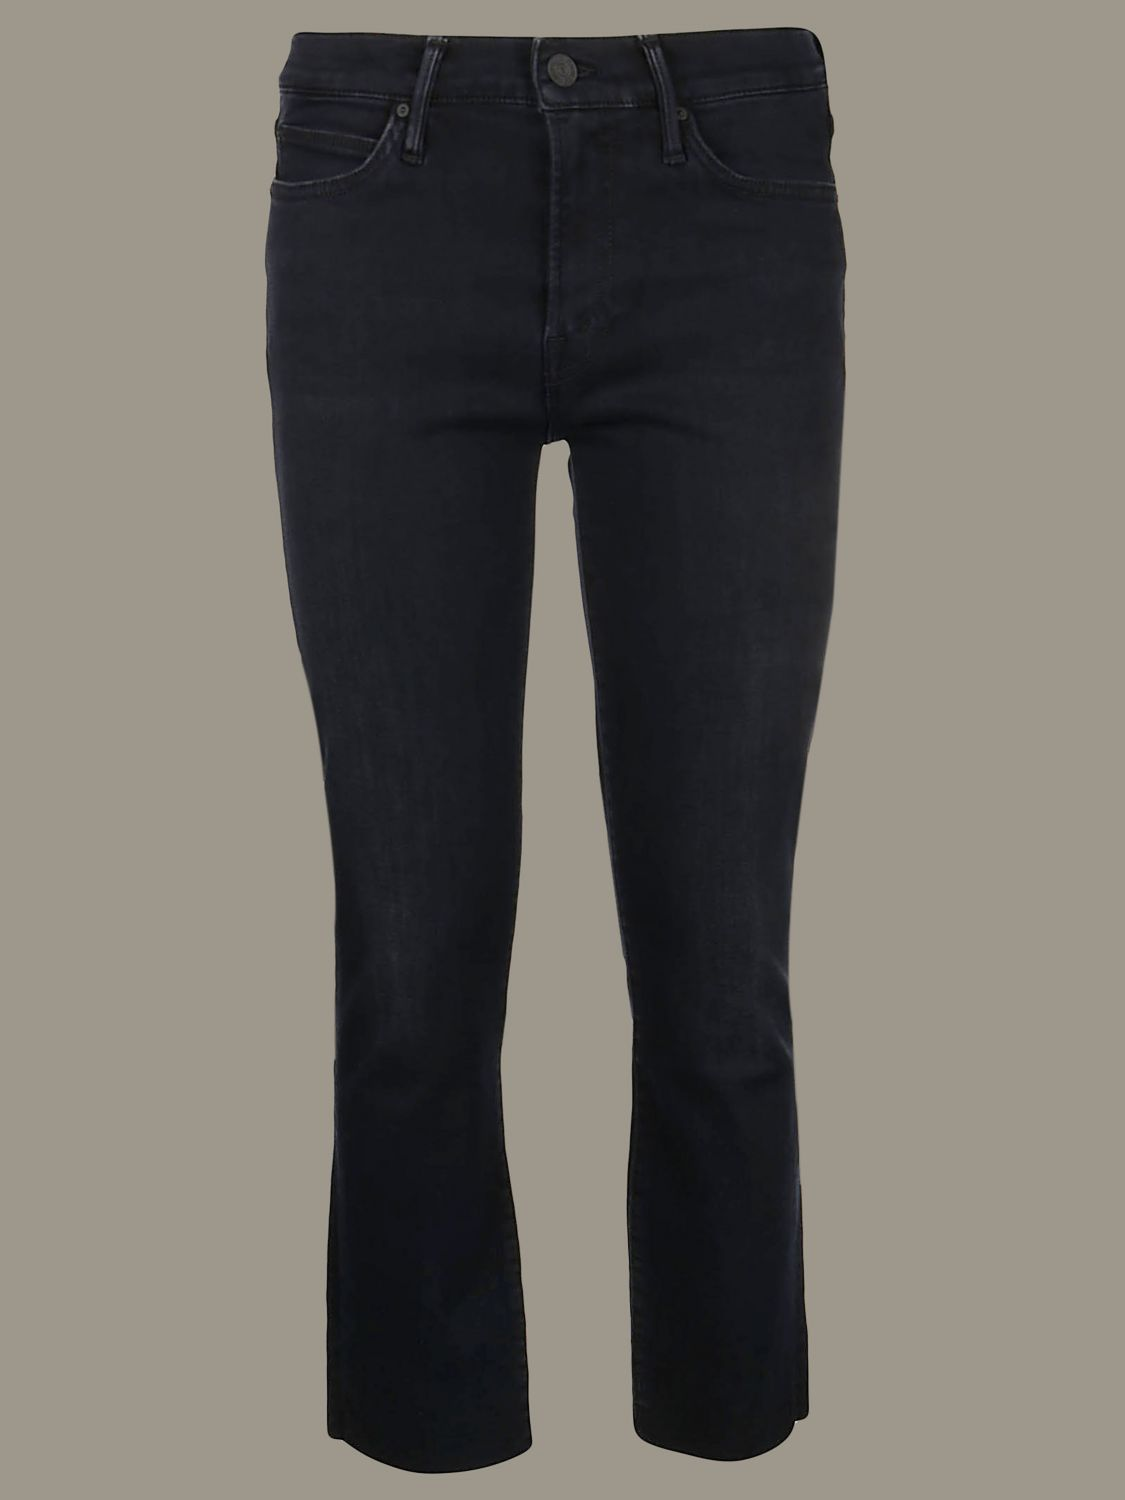 Jeans mujer Mother negro 1